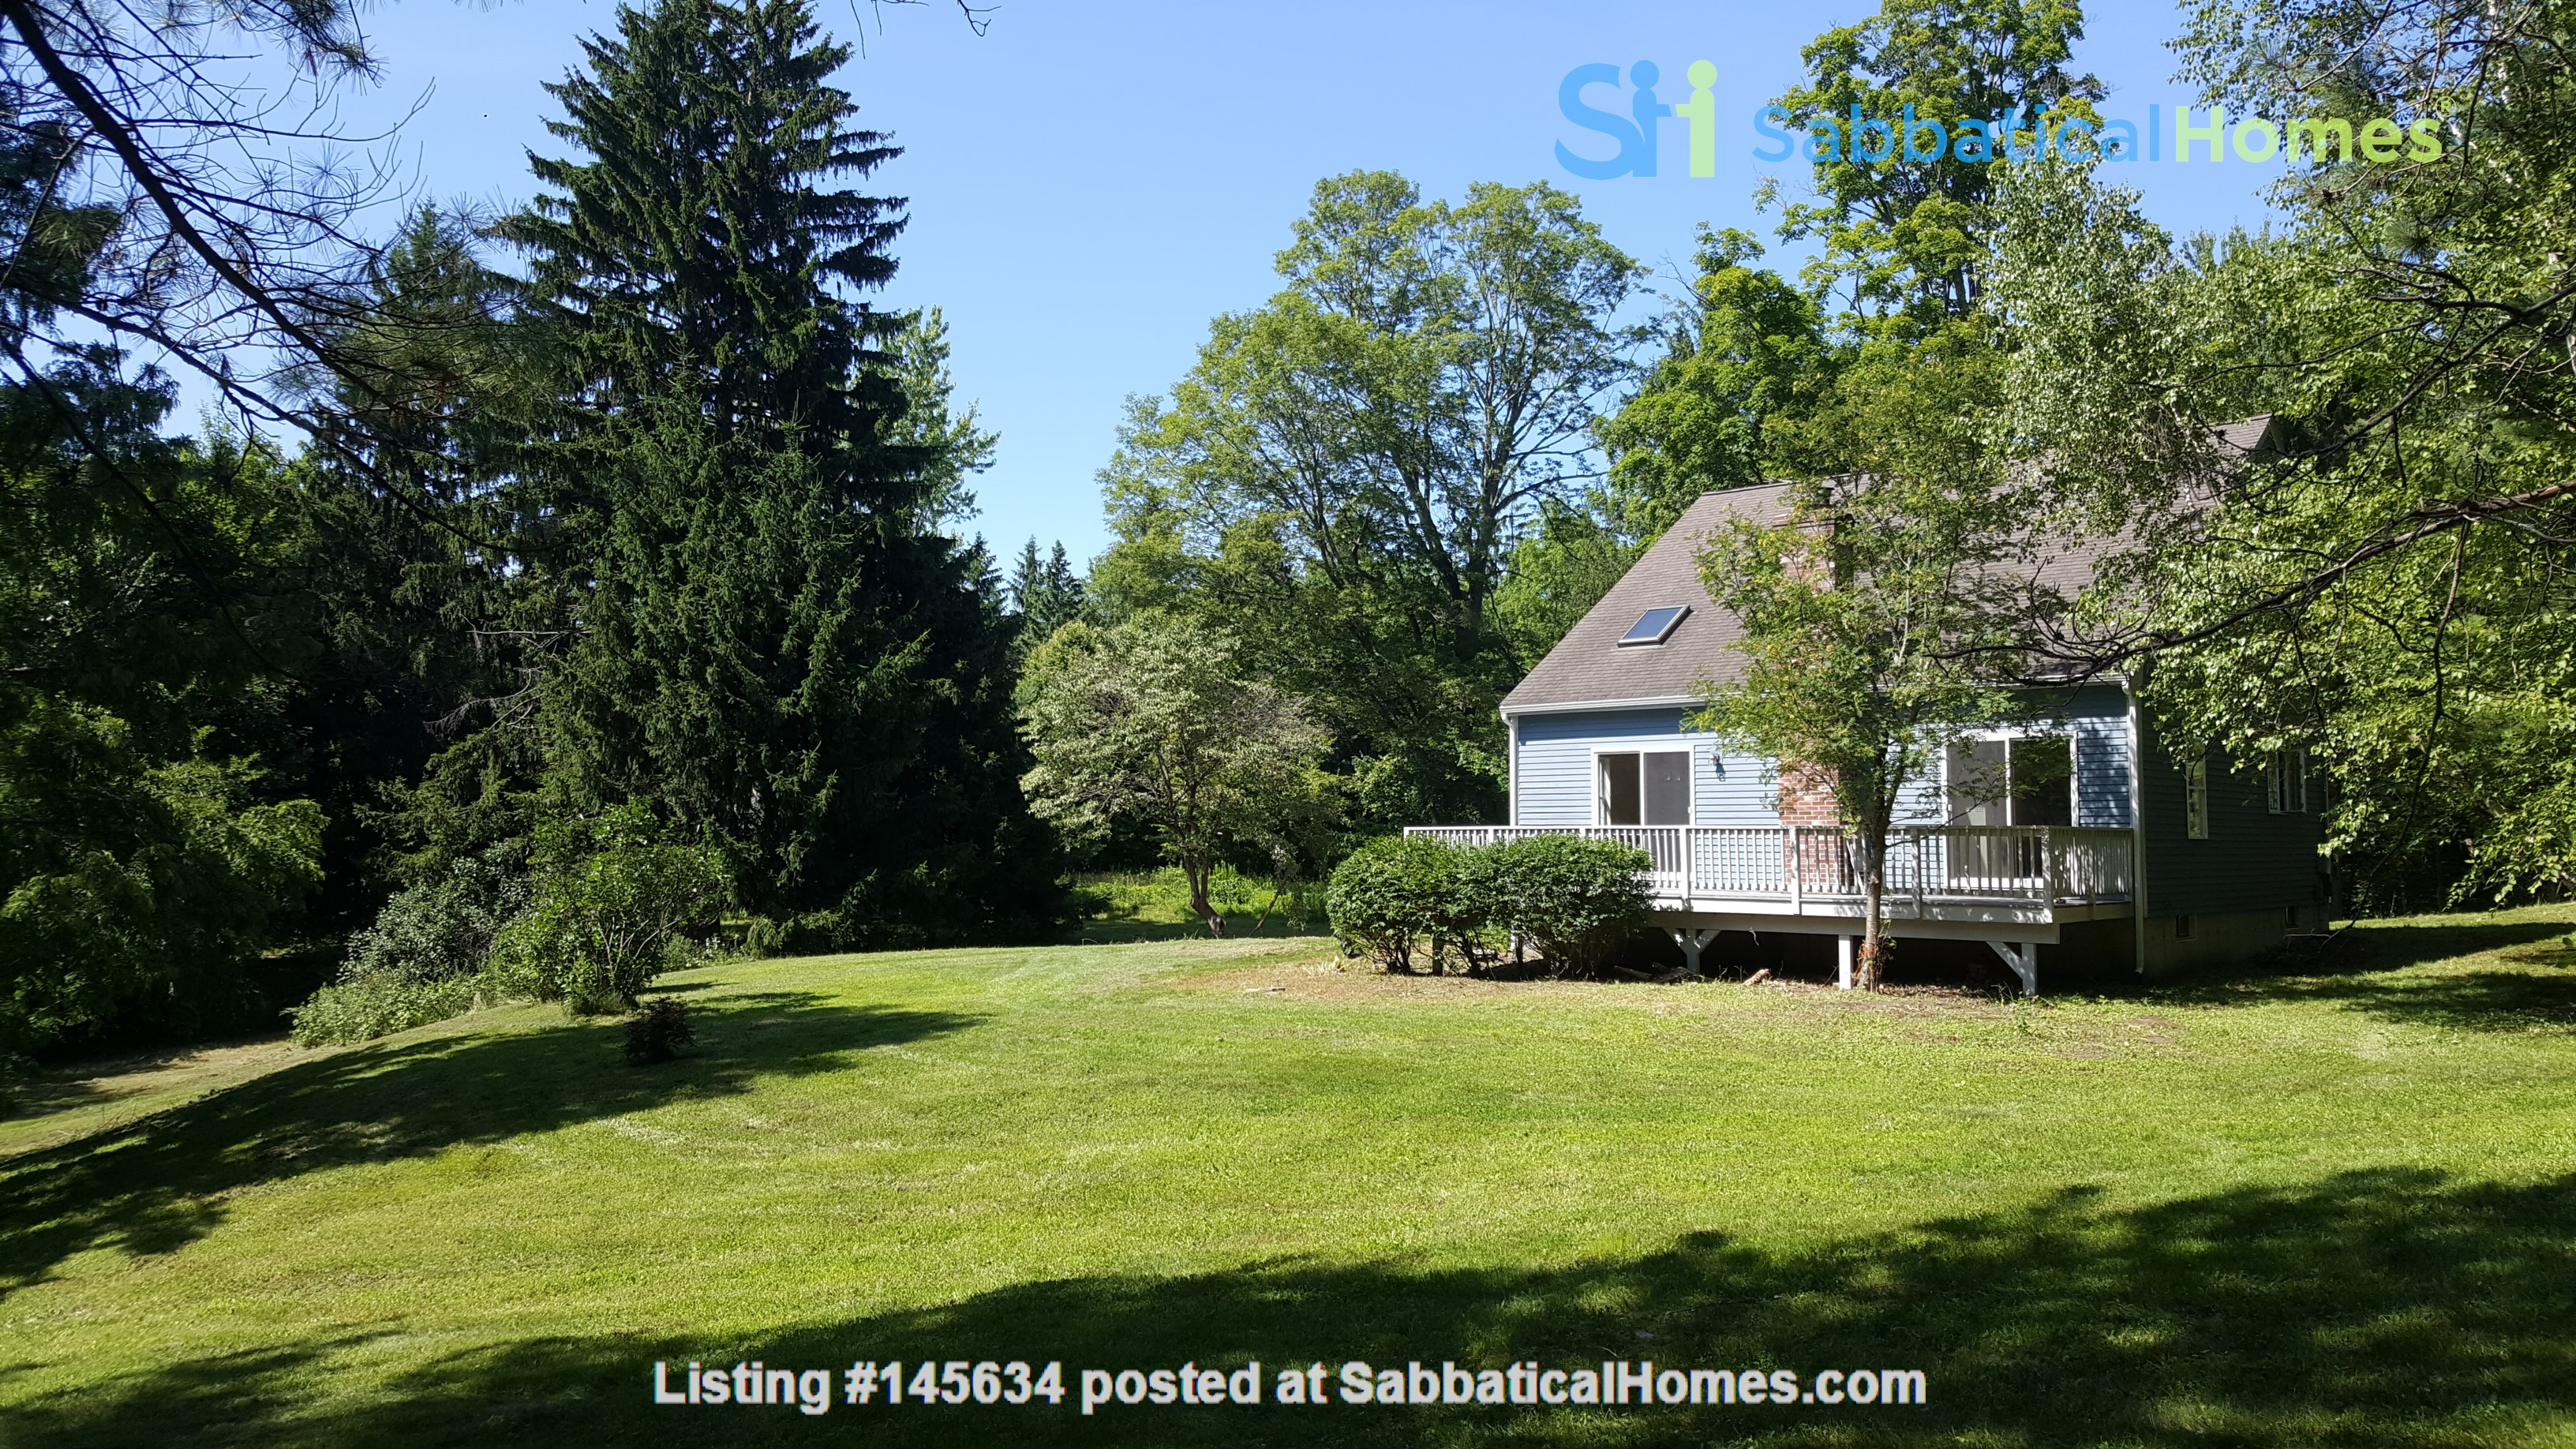 2 bedroom country house / 25 miles North of Boston and Cambridge Home Rental in Andover, Massachusetts, United States 0